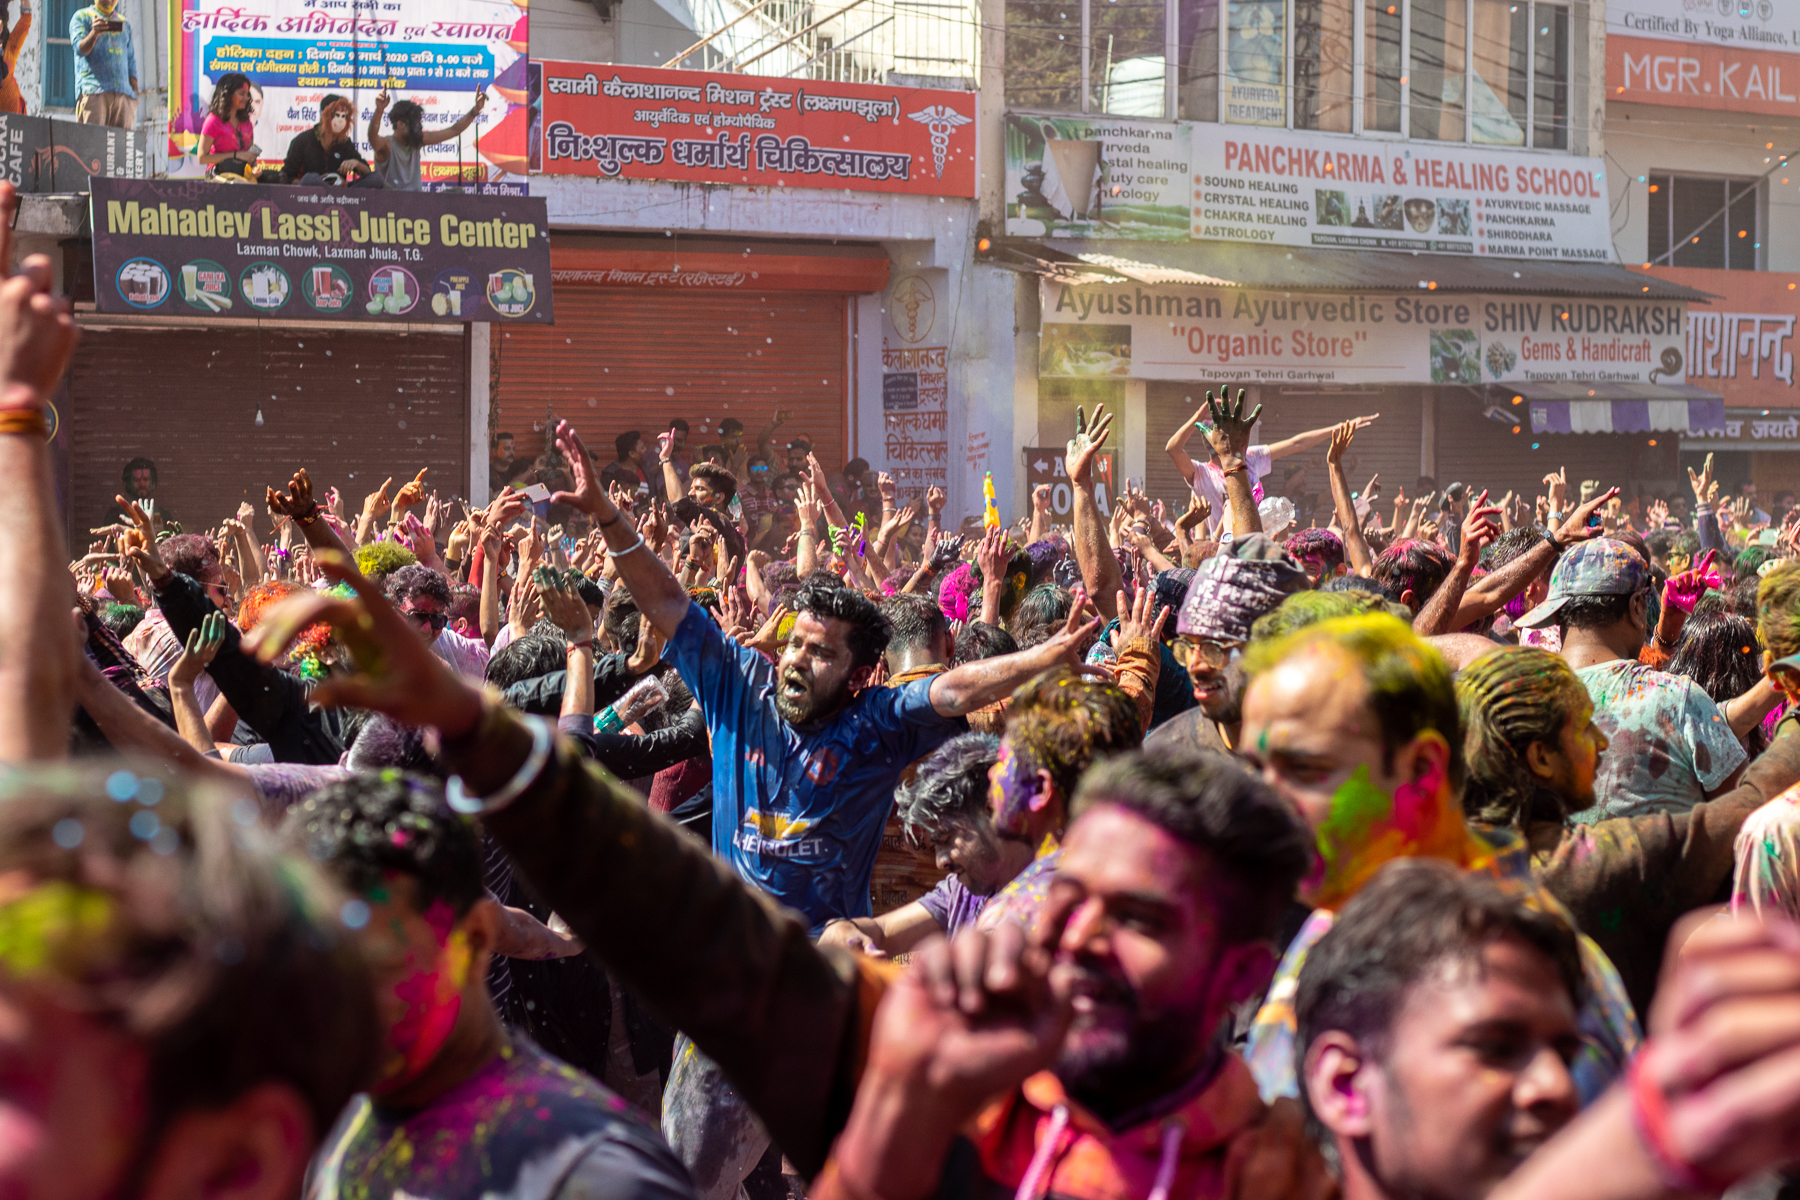 Happy crowds at the Holi Festival in Rishikesh.